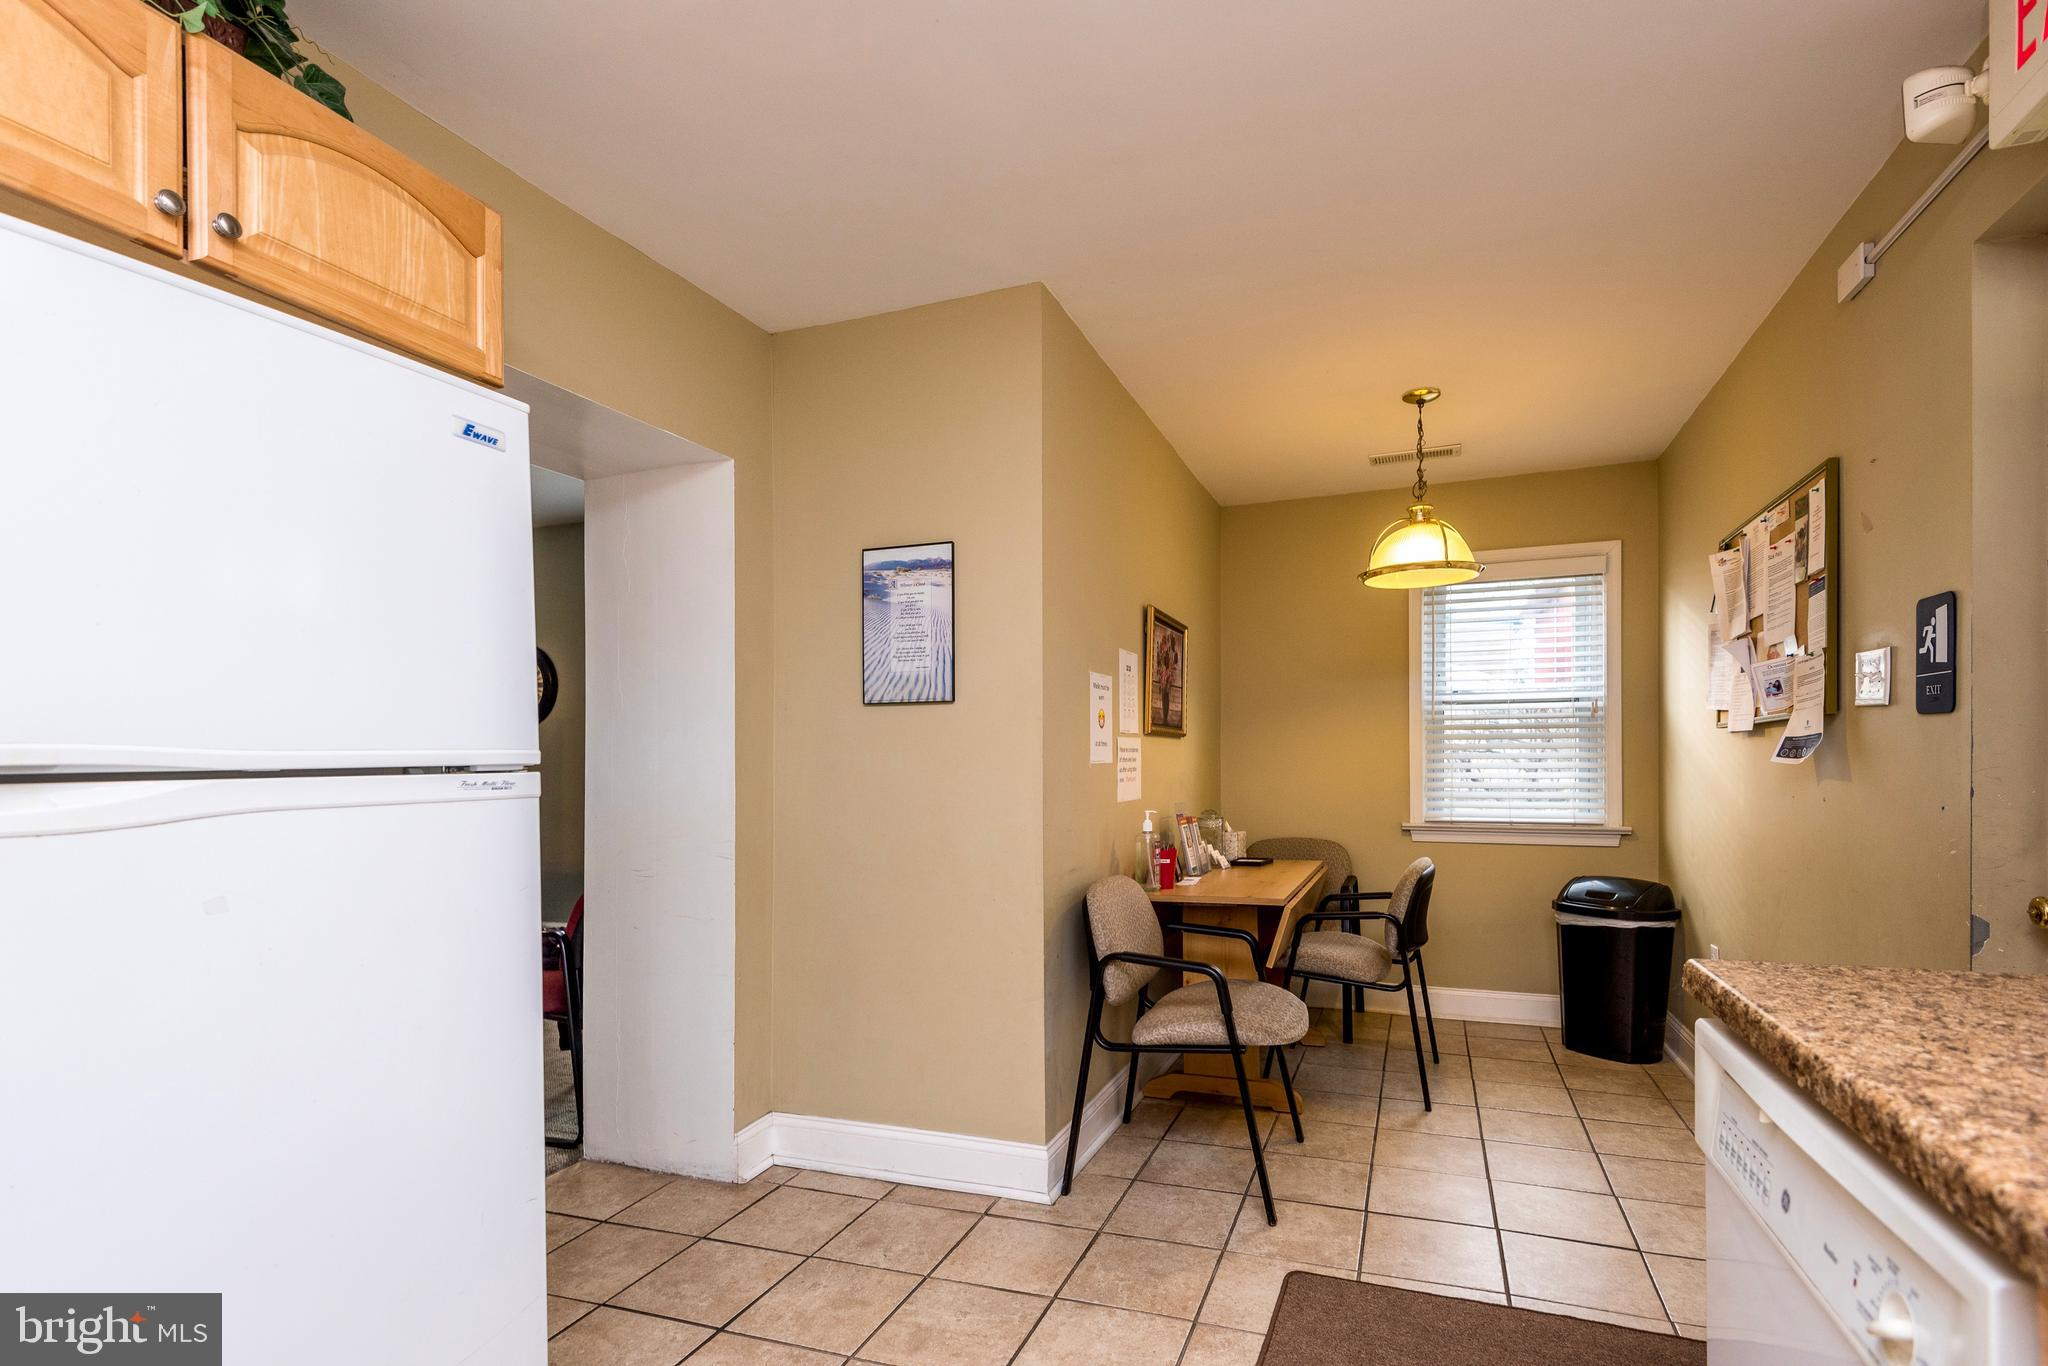 321 GRAVEL PIKE, COLLEGEVILLE, Pennsylvania 19426, 4 Bedrooms Bedrooms, ,2 BathroomsBathrooms,Single Family,For Sale,321 GRAVEL PIKE,PAMC680058